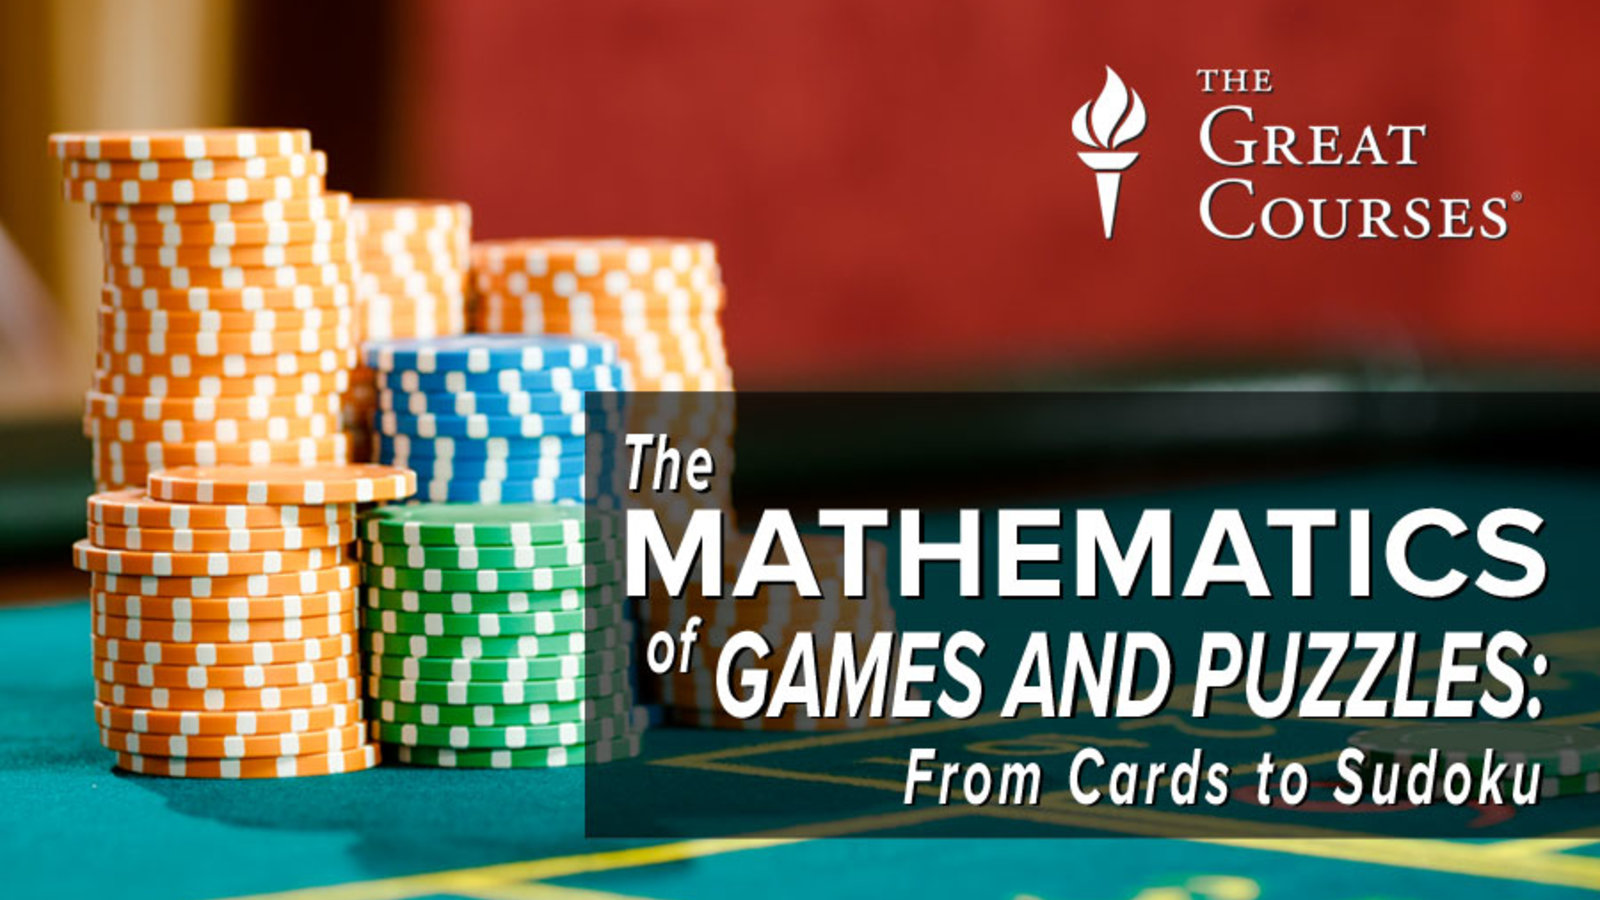 The Mathematics of Games and Puzzles - From Cards to Sudoku